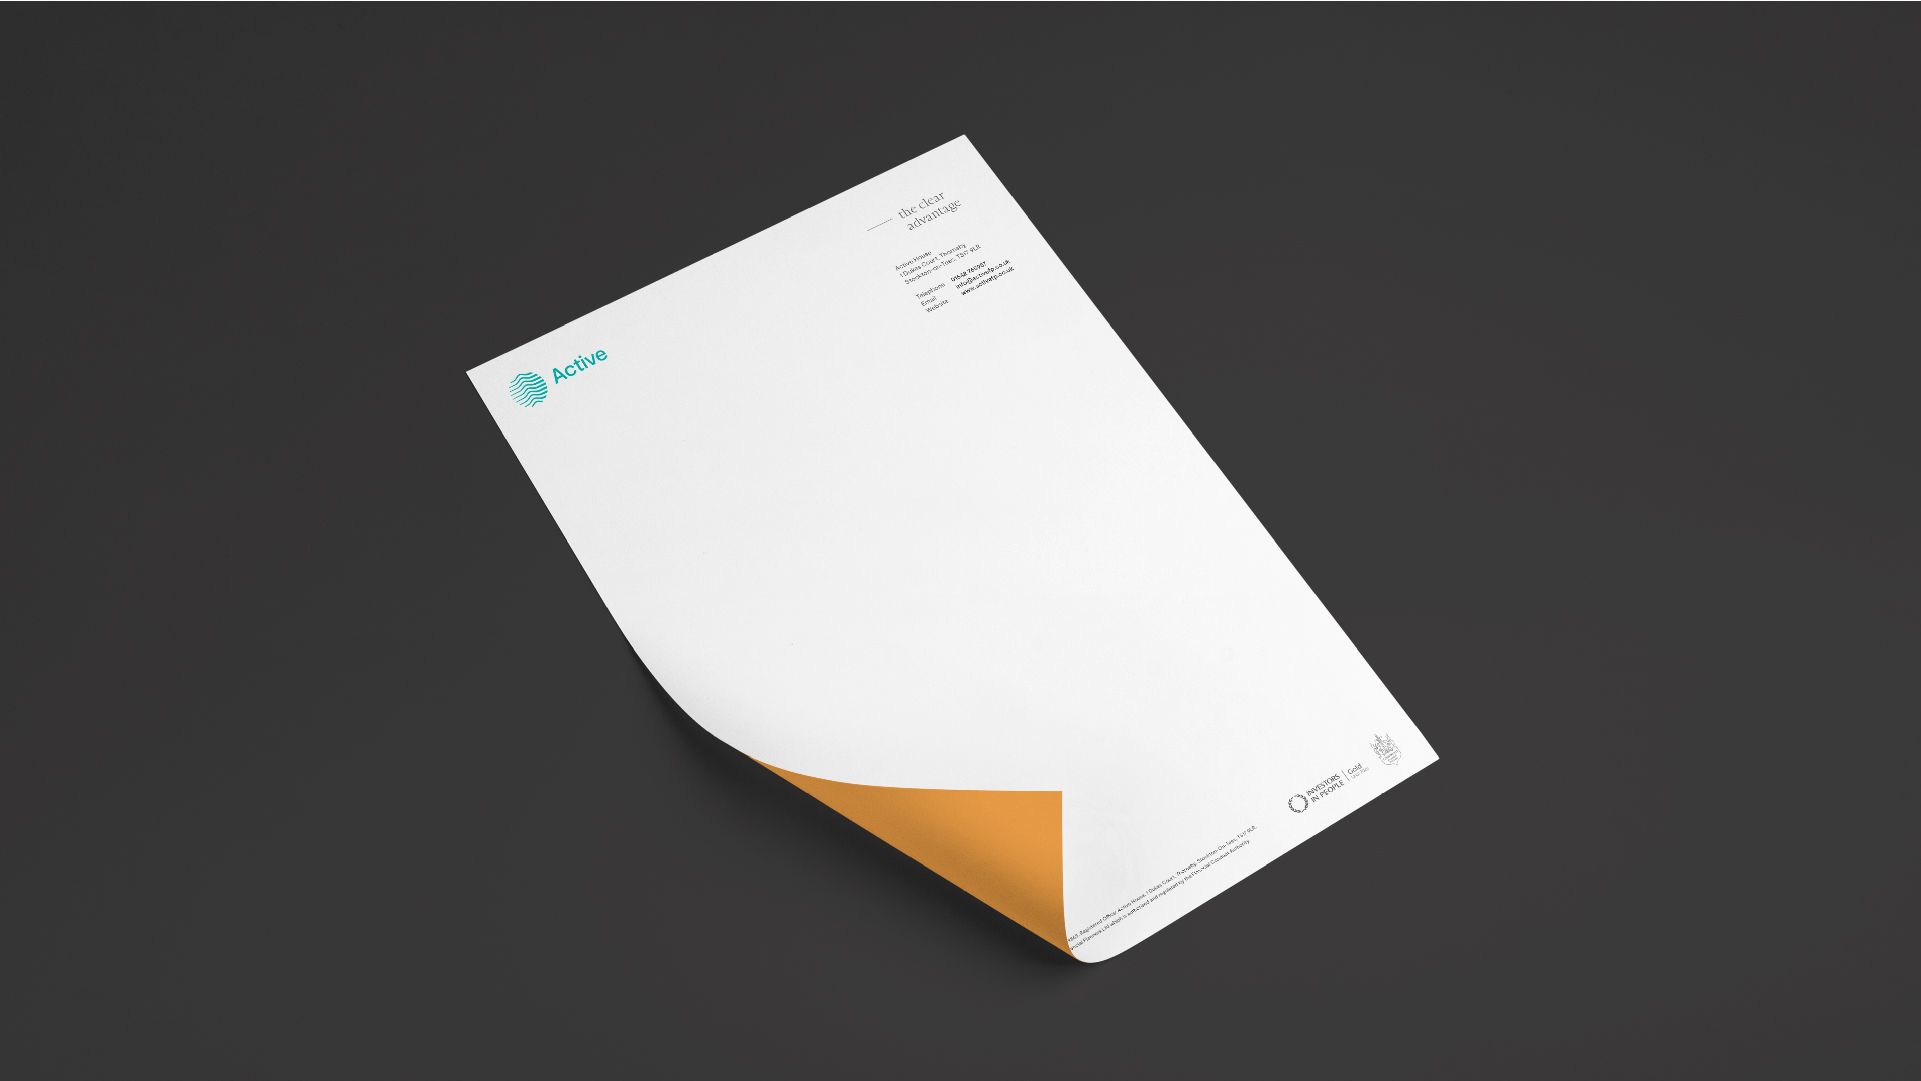 Active - BetterBrandBuilder™ DELIVER - Letterhead Design